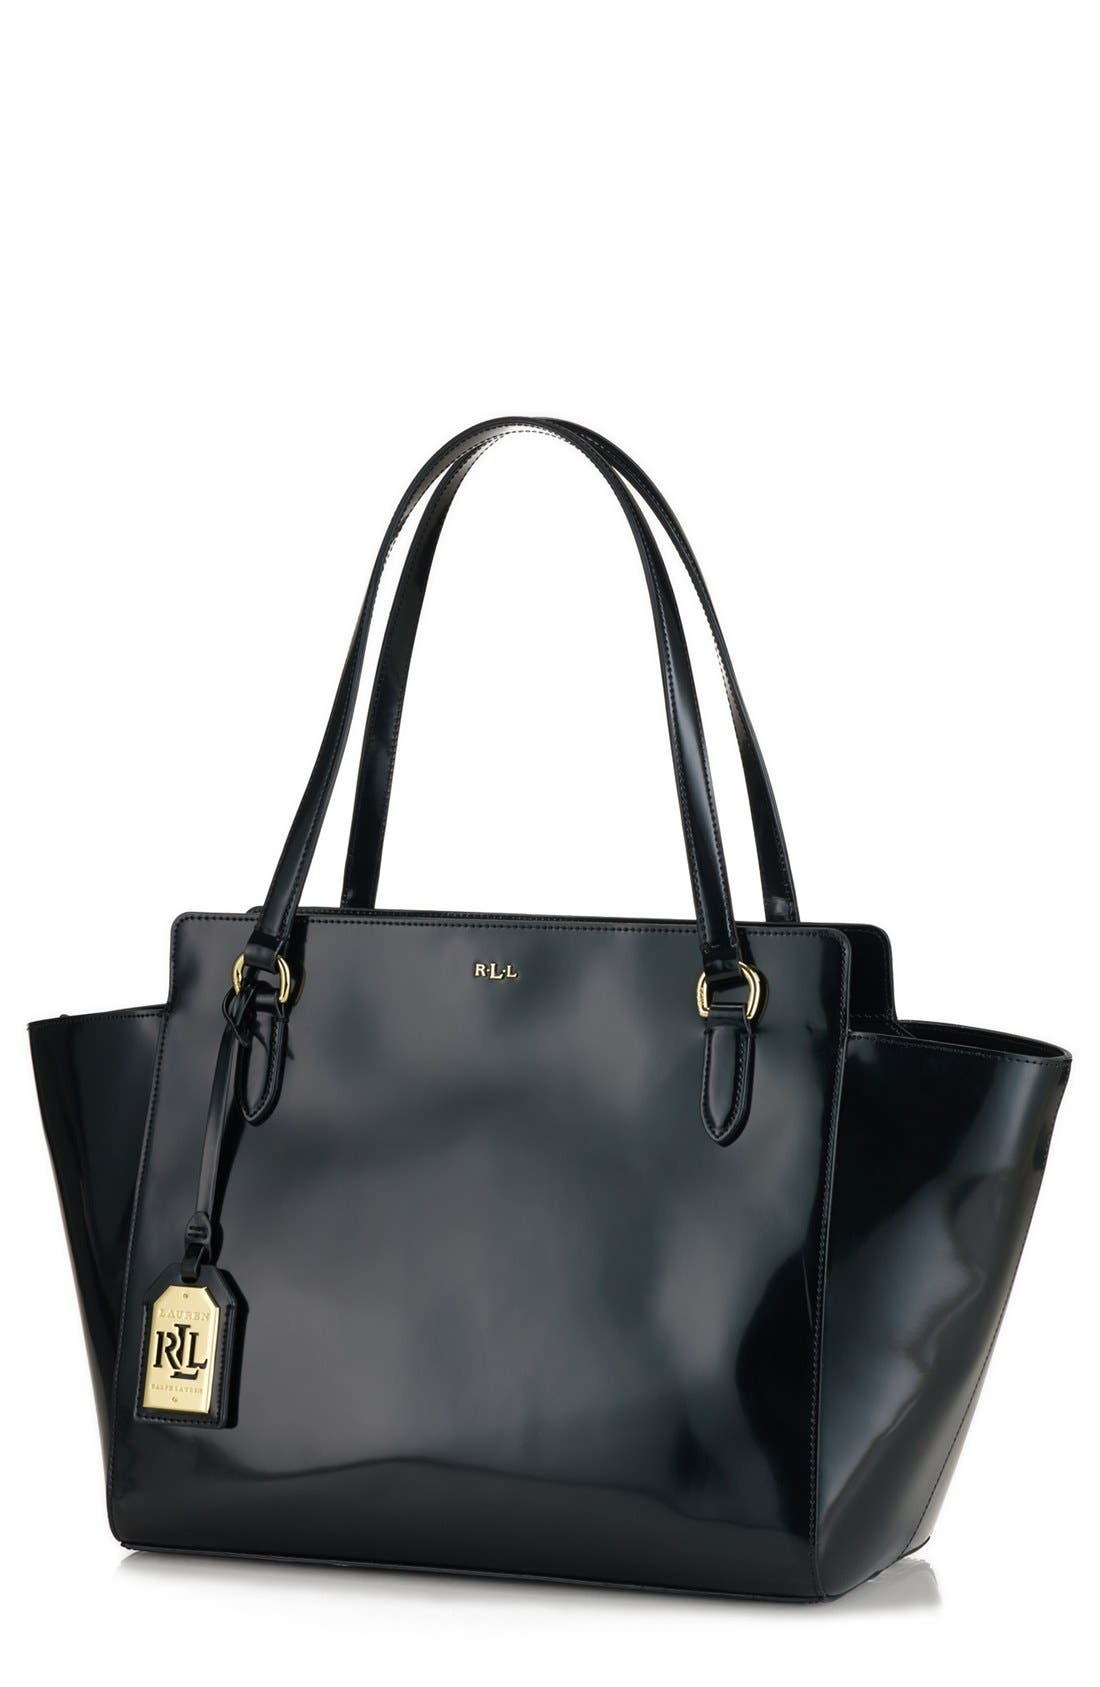 Alternate Image 1 Selected - Lauren Ralph Lauren Large Spazzolato Leather Shopper